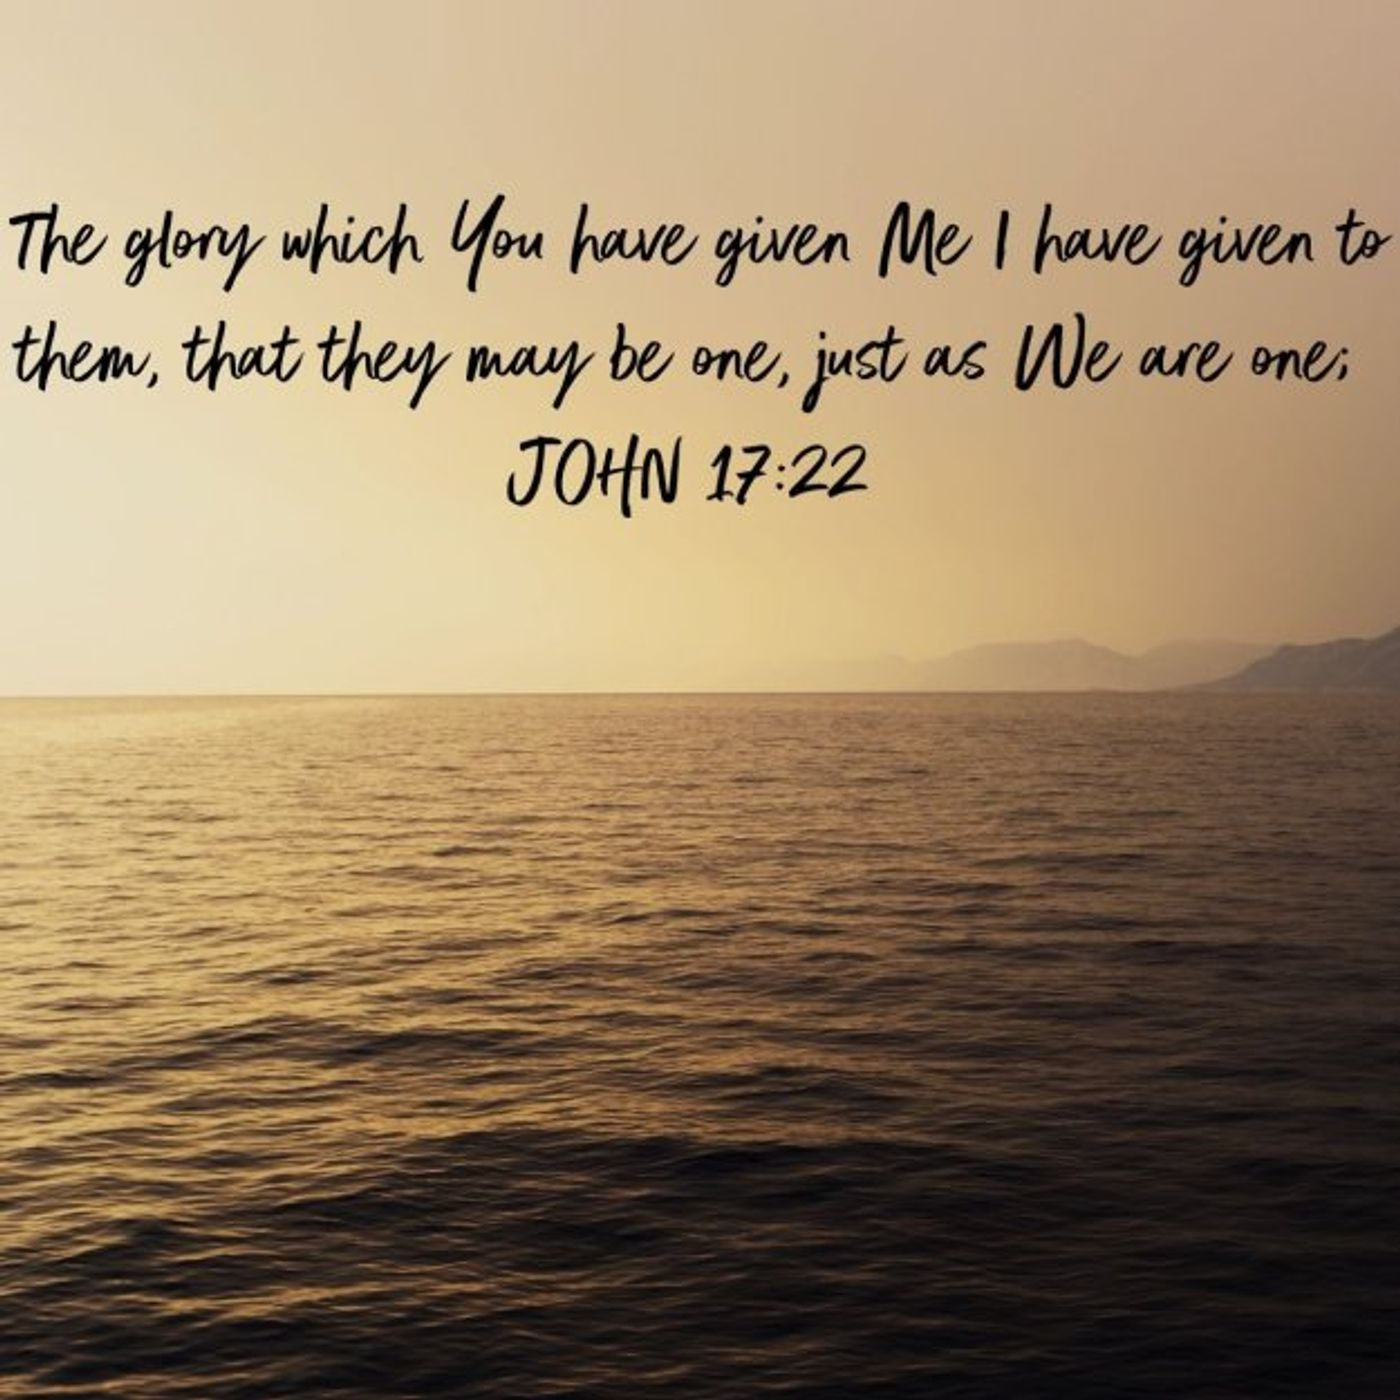 John 17:22 and 3 Questions